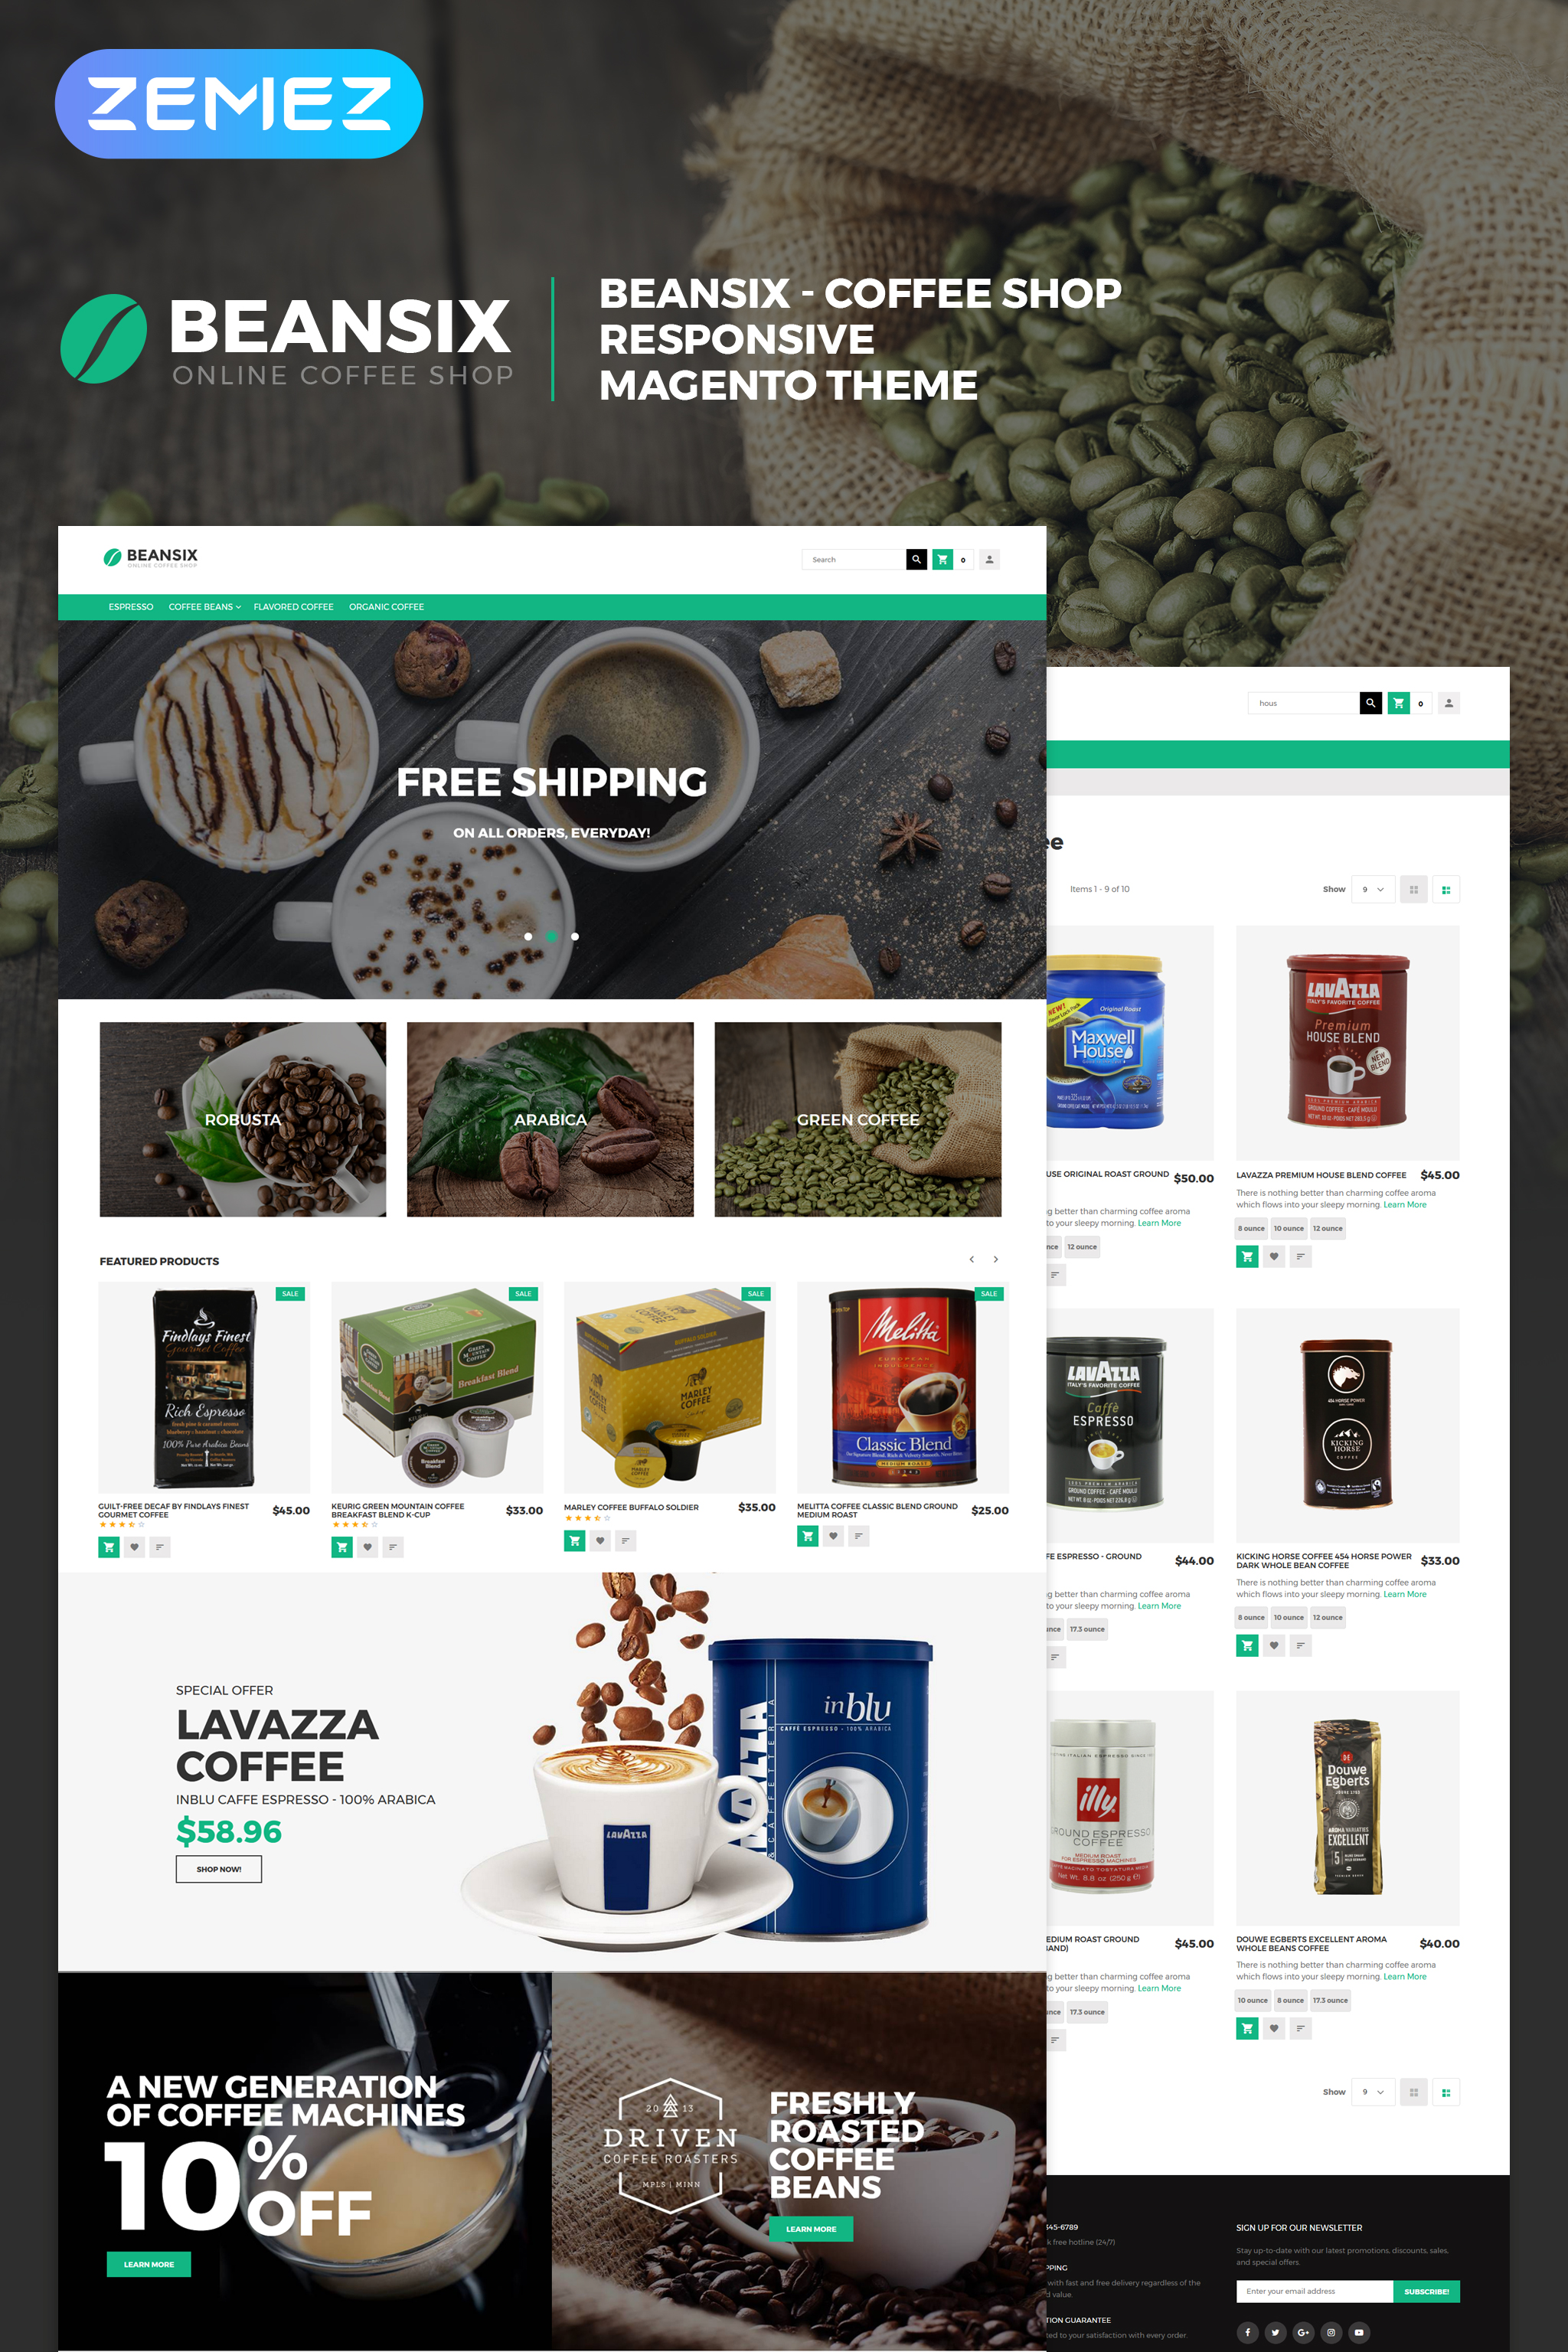 Beansix - Coffee Shop Magento Theme - screenshot